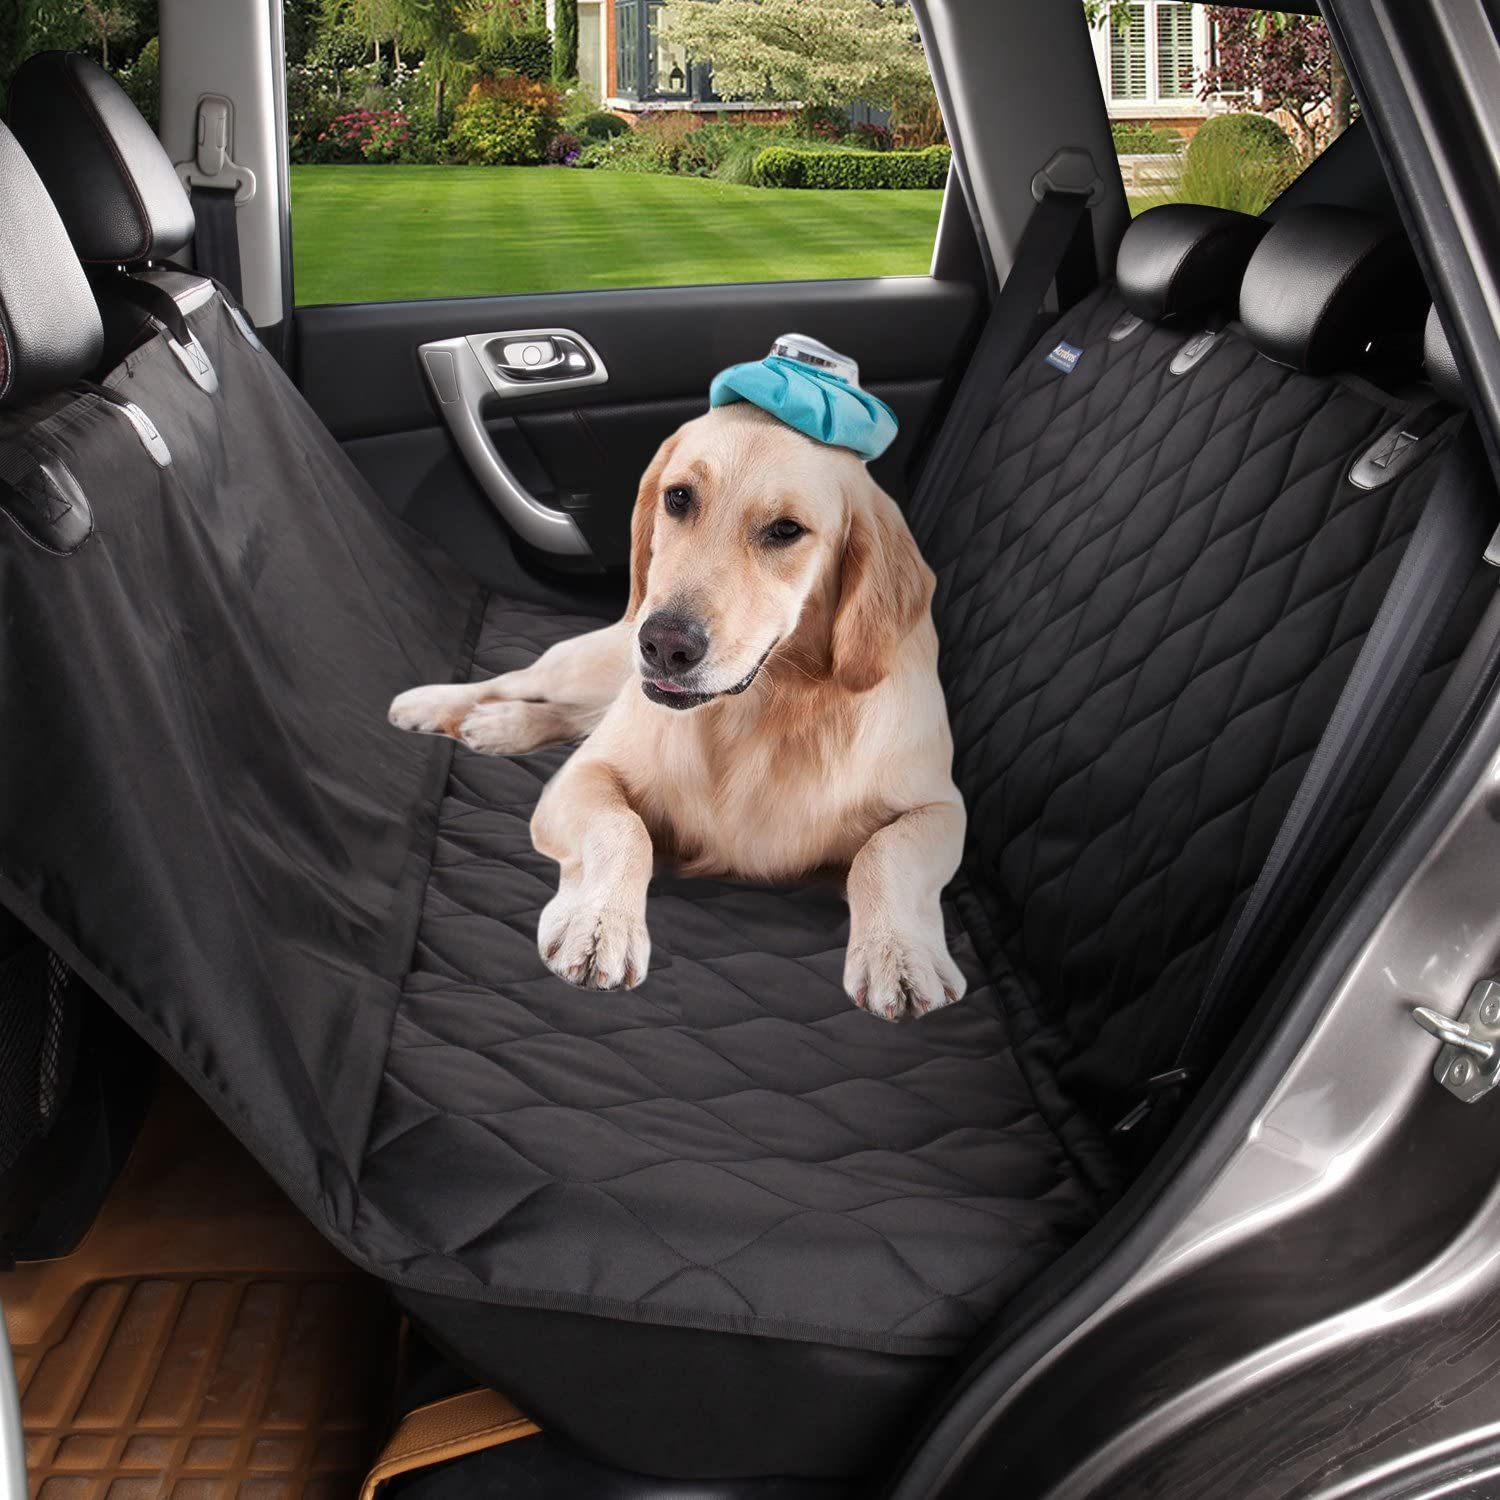 Pet Dog Car Seat Cover for Back Seats Three Sizes to Neatly Fit Cars, Trucks SUVs, Exclusive Seat-Hugging Side Flaps, Extra Strong Construction Details, Hammock Style